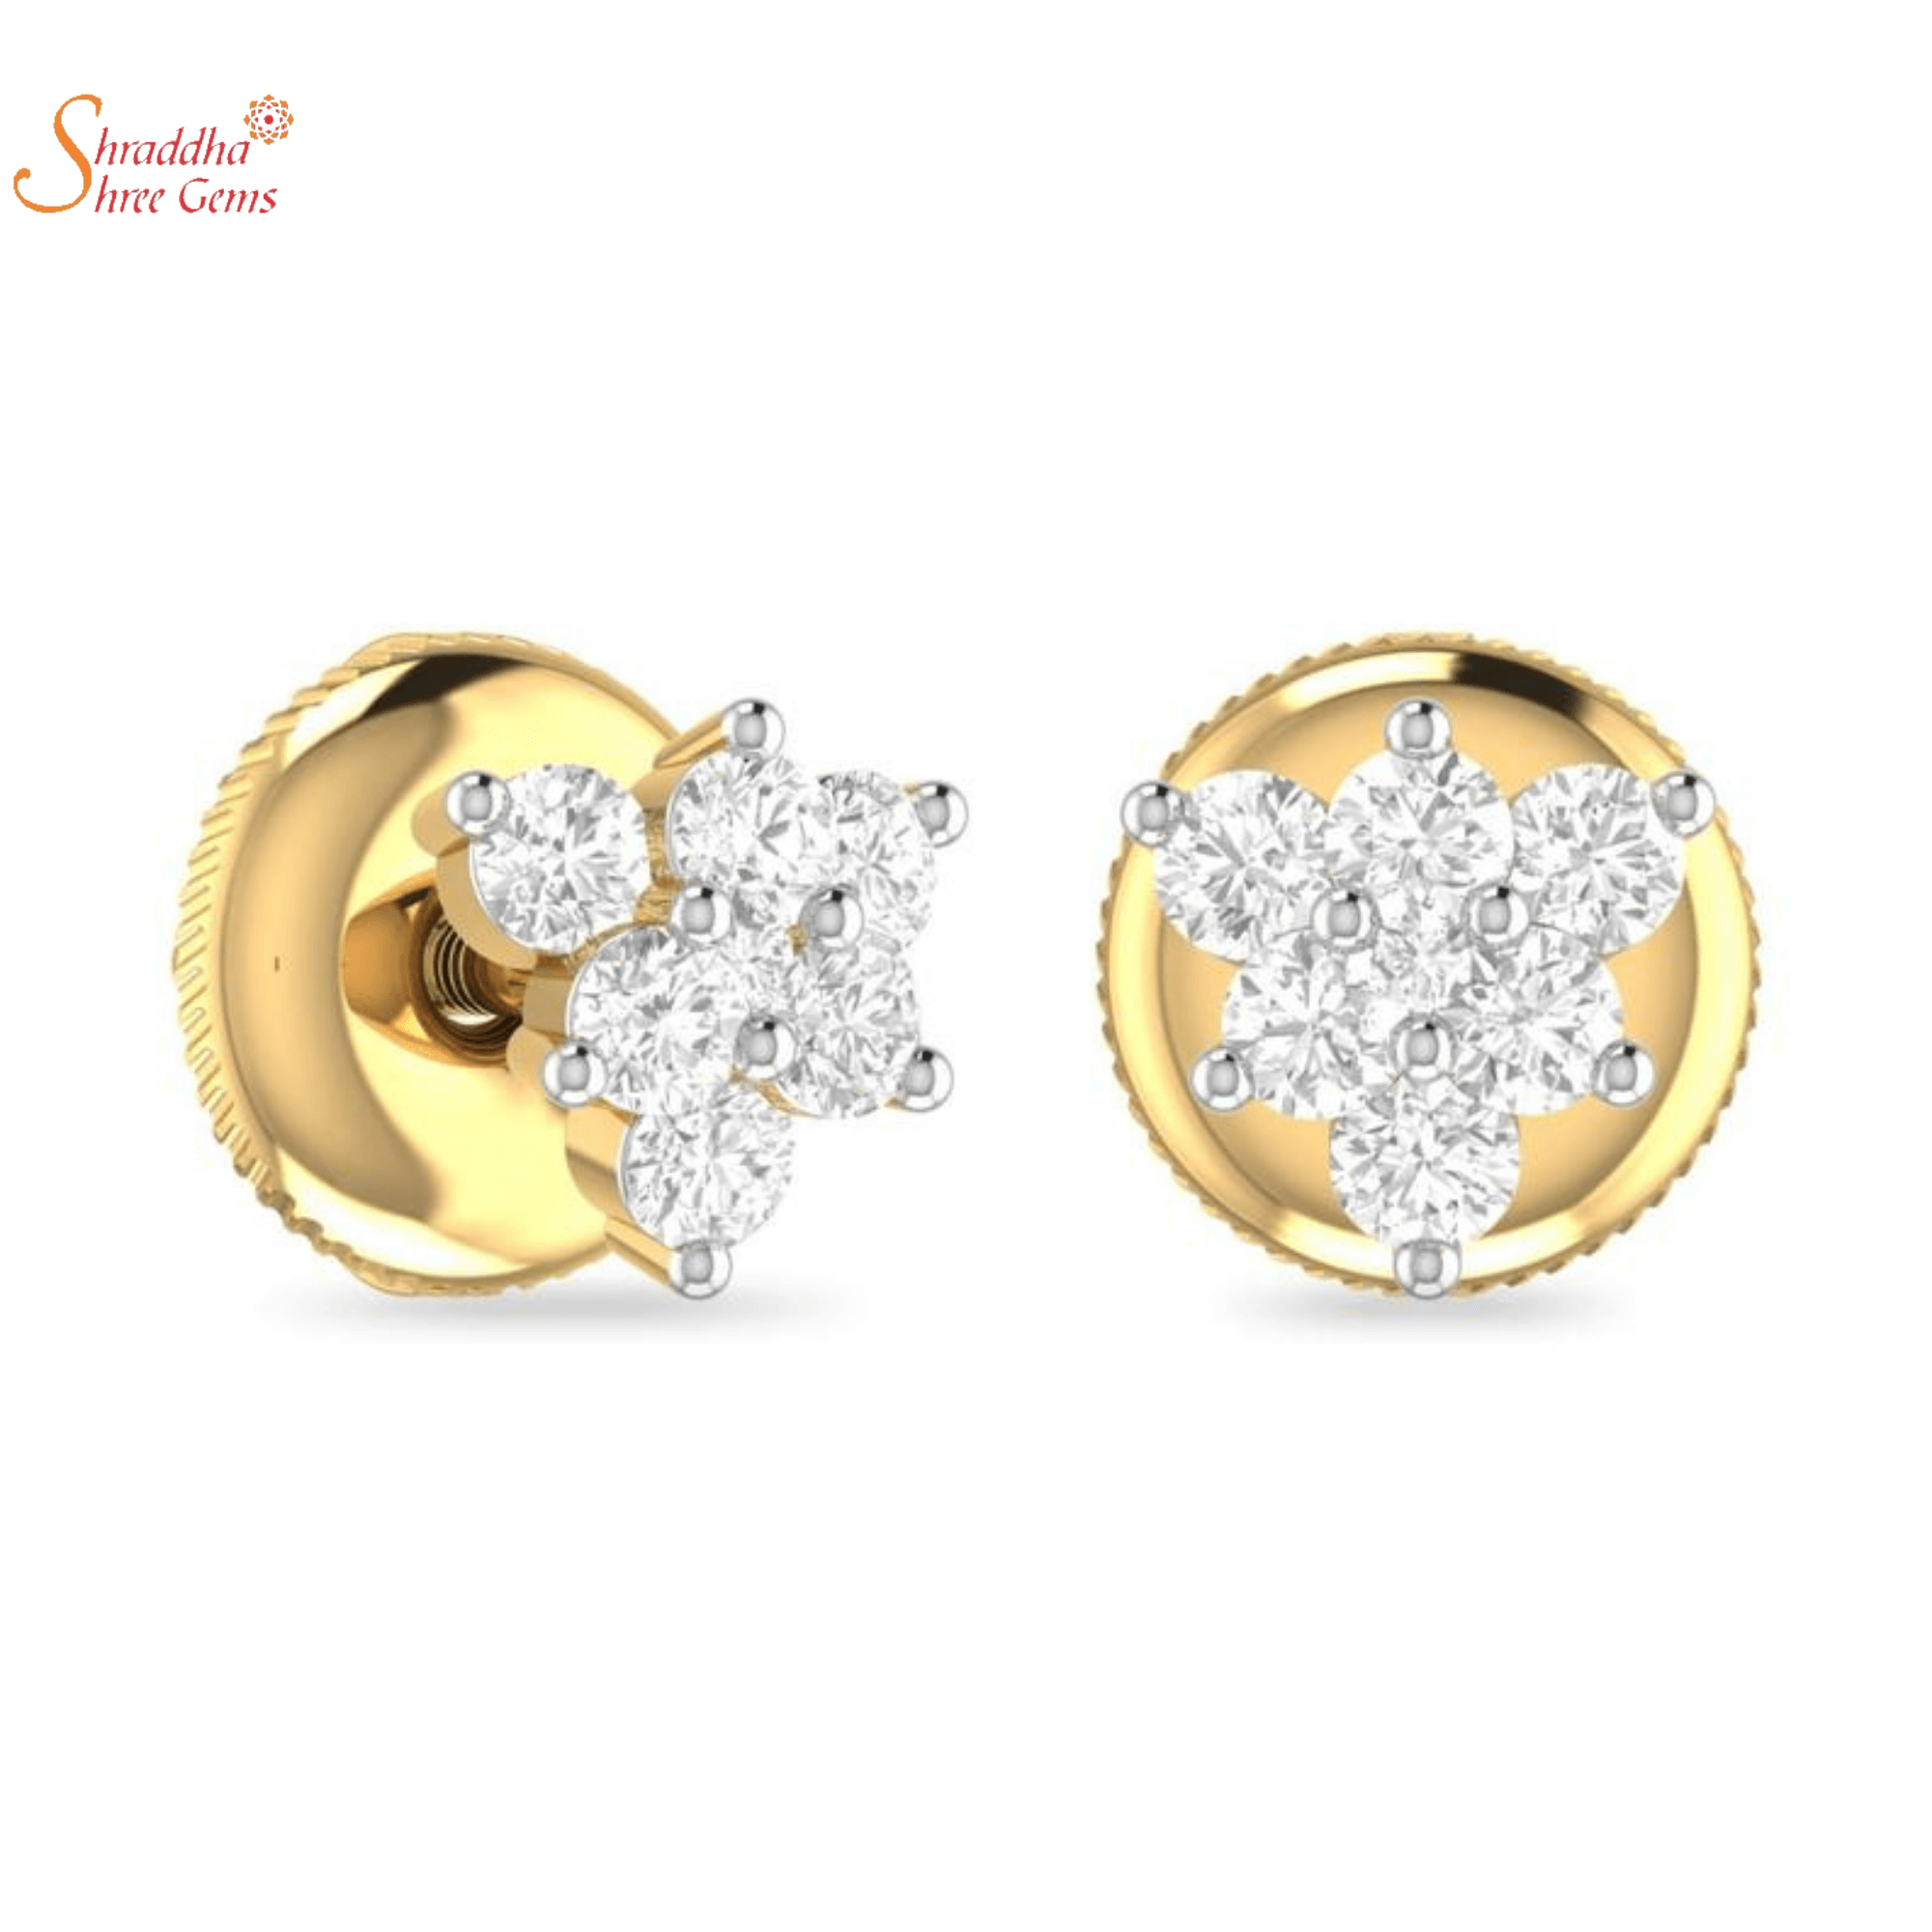 Moissanite Diamond Earring Tops With Five Stones In Sterling Silver